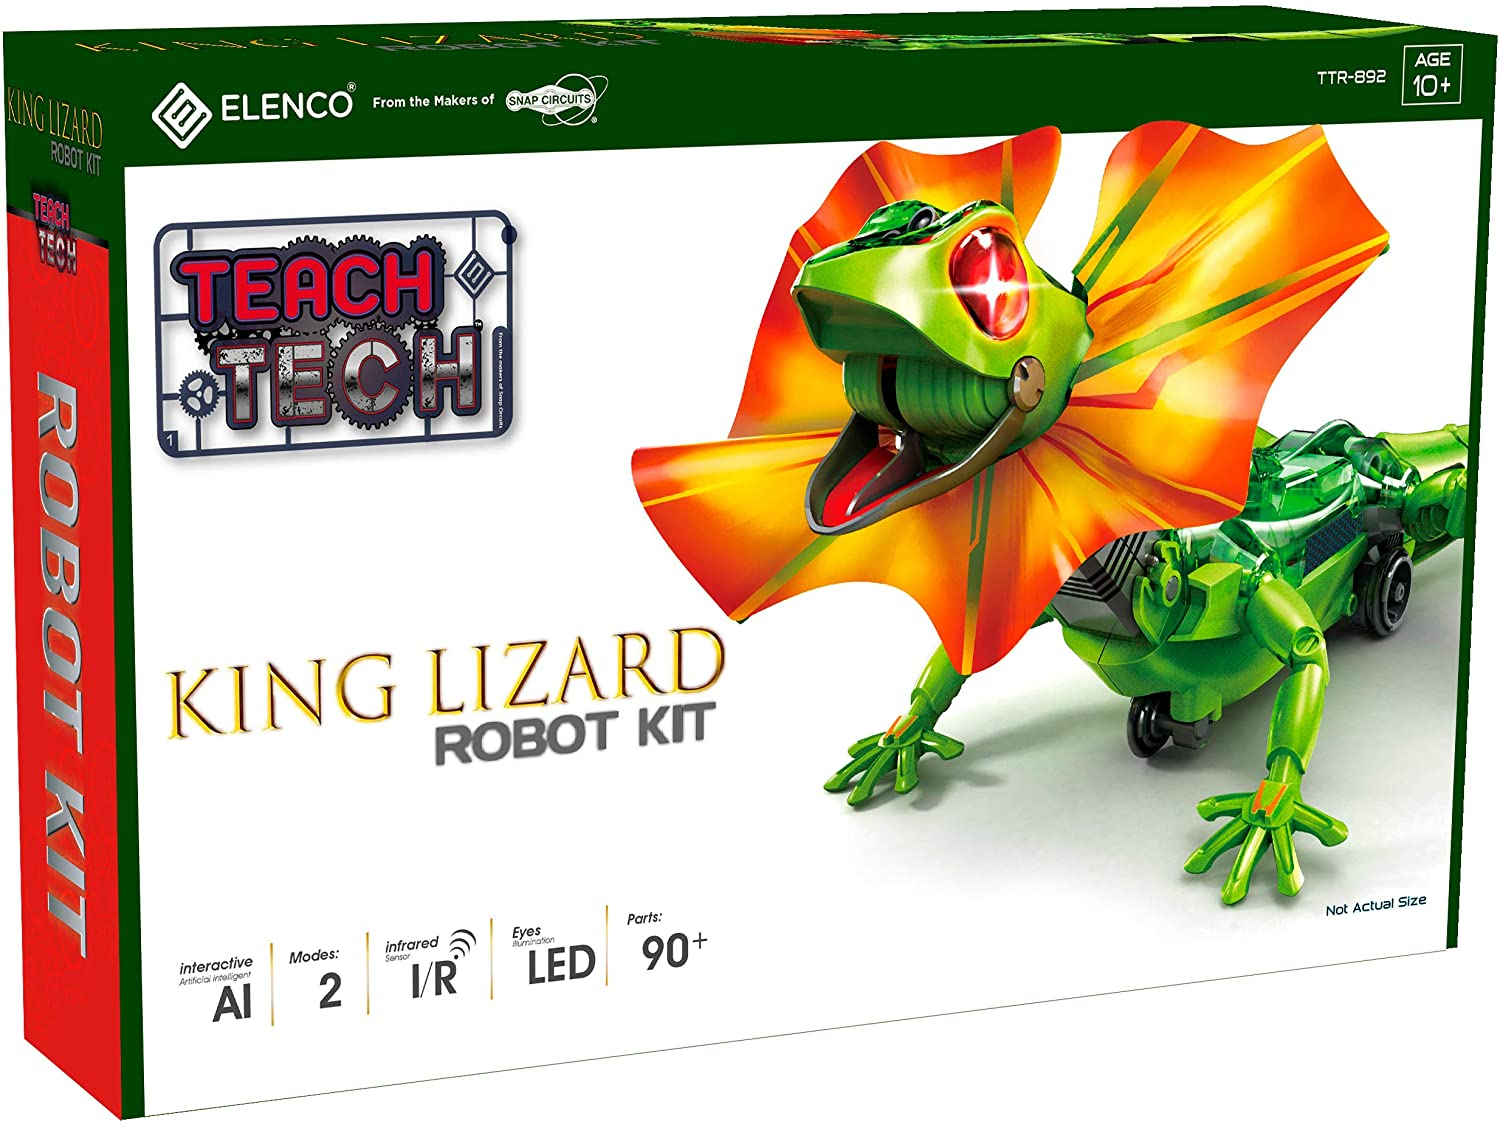 King Lizard Robot Teach Tech kit